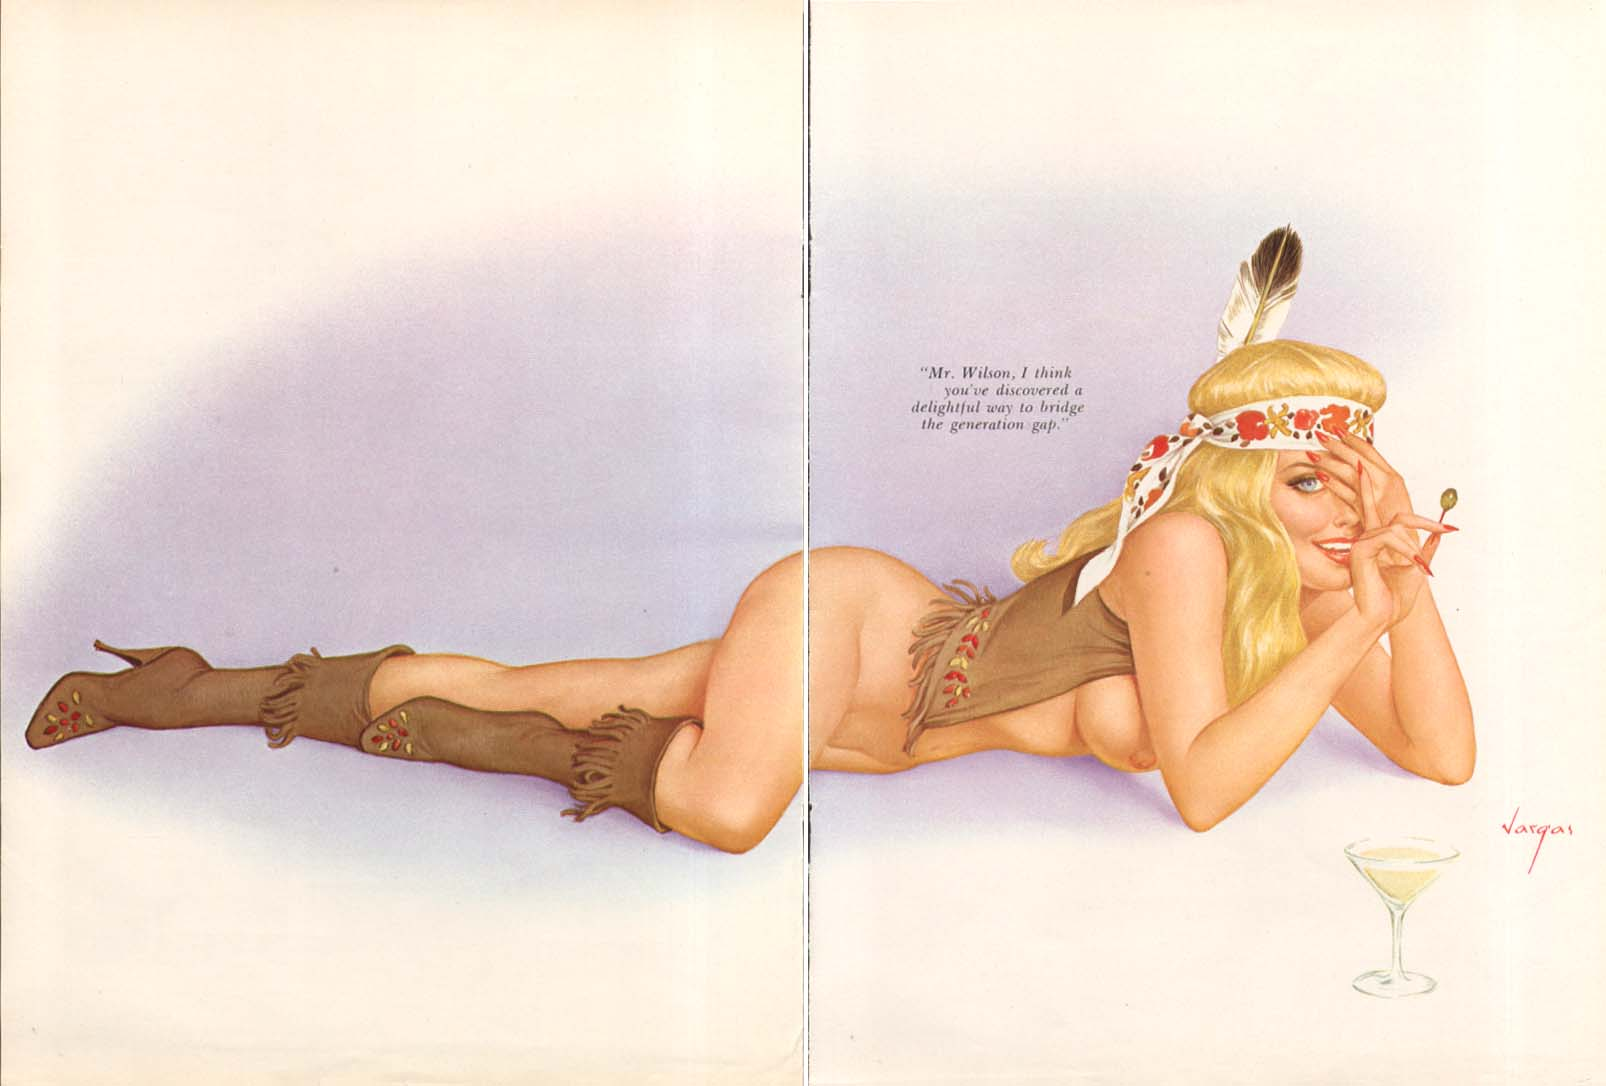 Image for Way to bridge the generation gap Vargas pin-up 1969